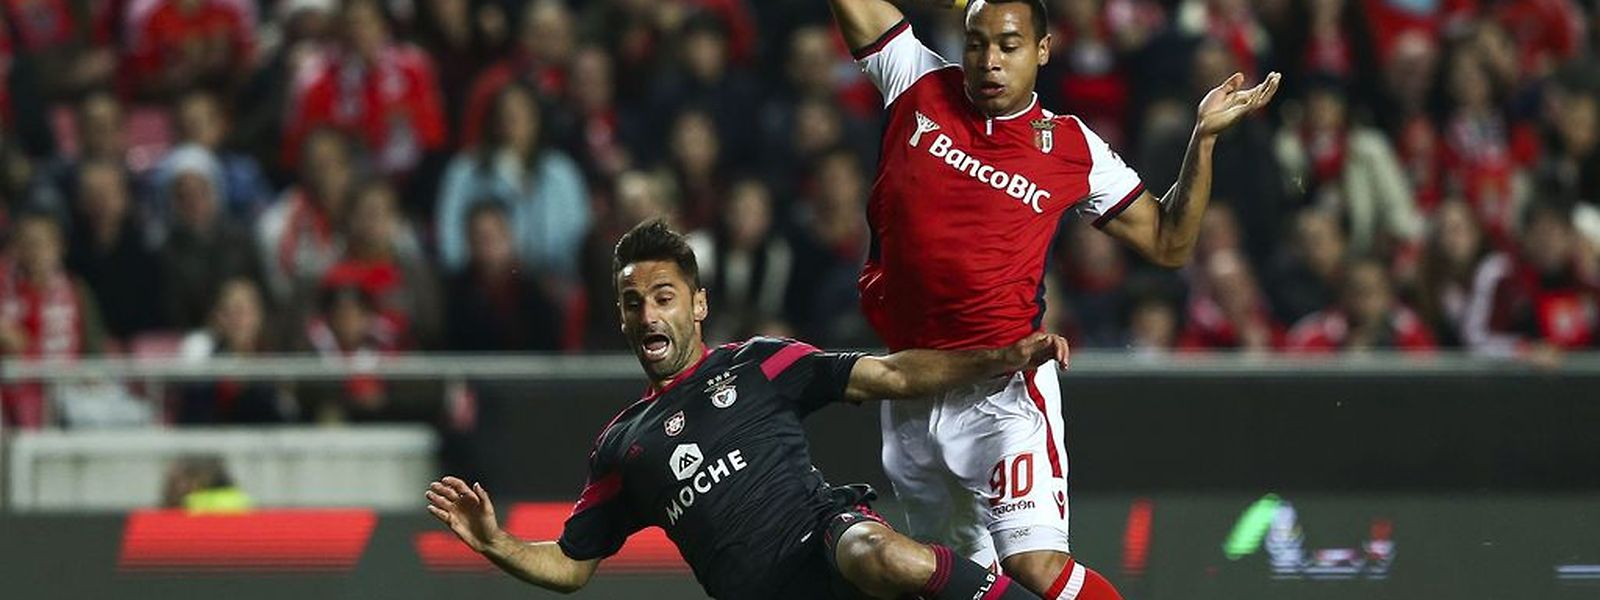 SL Benfica's player Jonas (L) fights for the ball with SC Braga's Pardo (R) during their Round of 16 Soccer Cup match held at Luz Stadium in Lisbon, Portugal, 18 December 2014. JOSE SENA GOULAO/LUSA